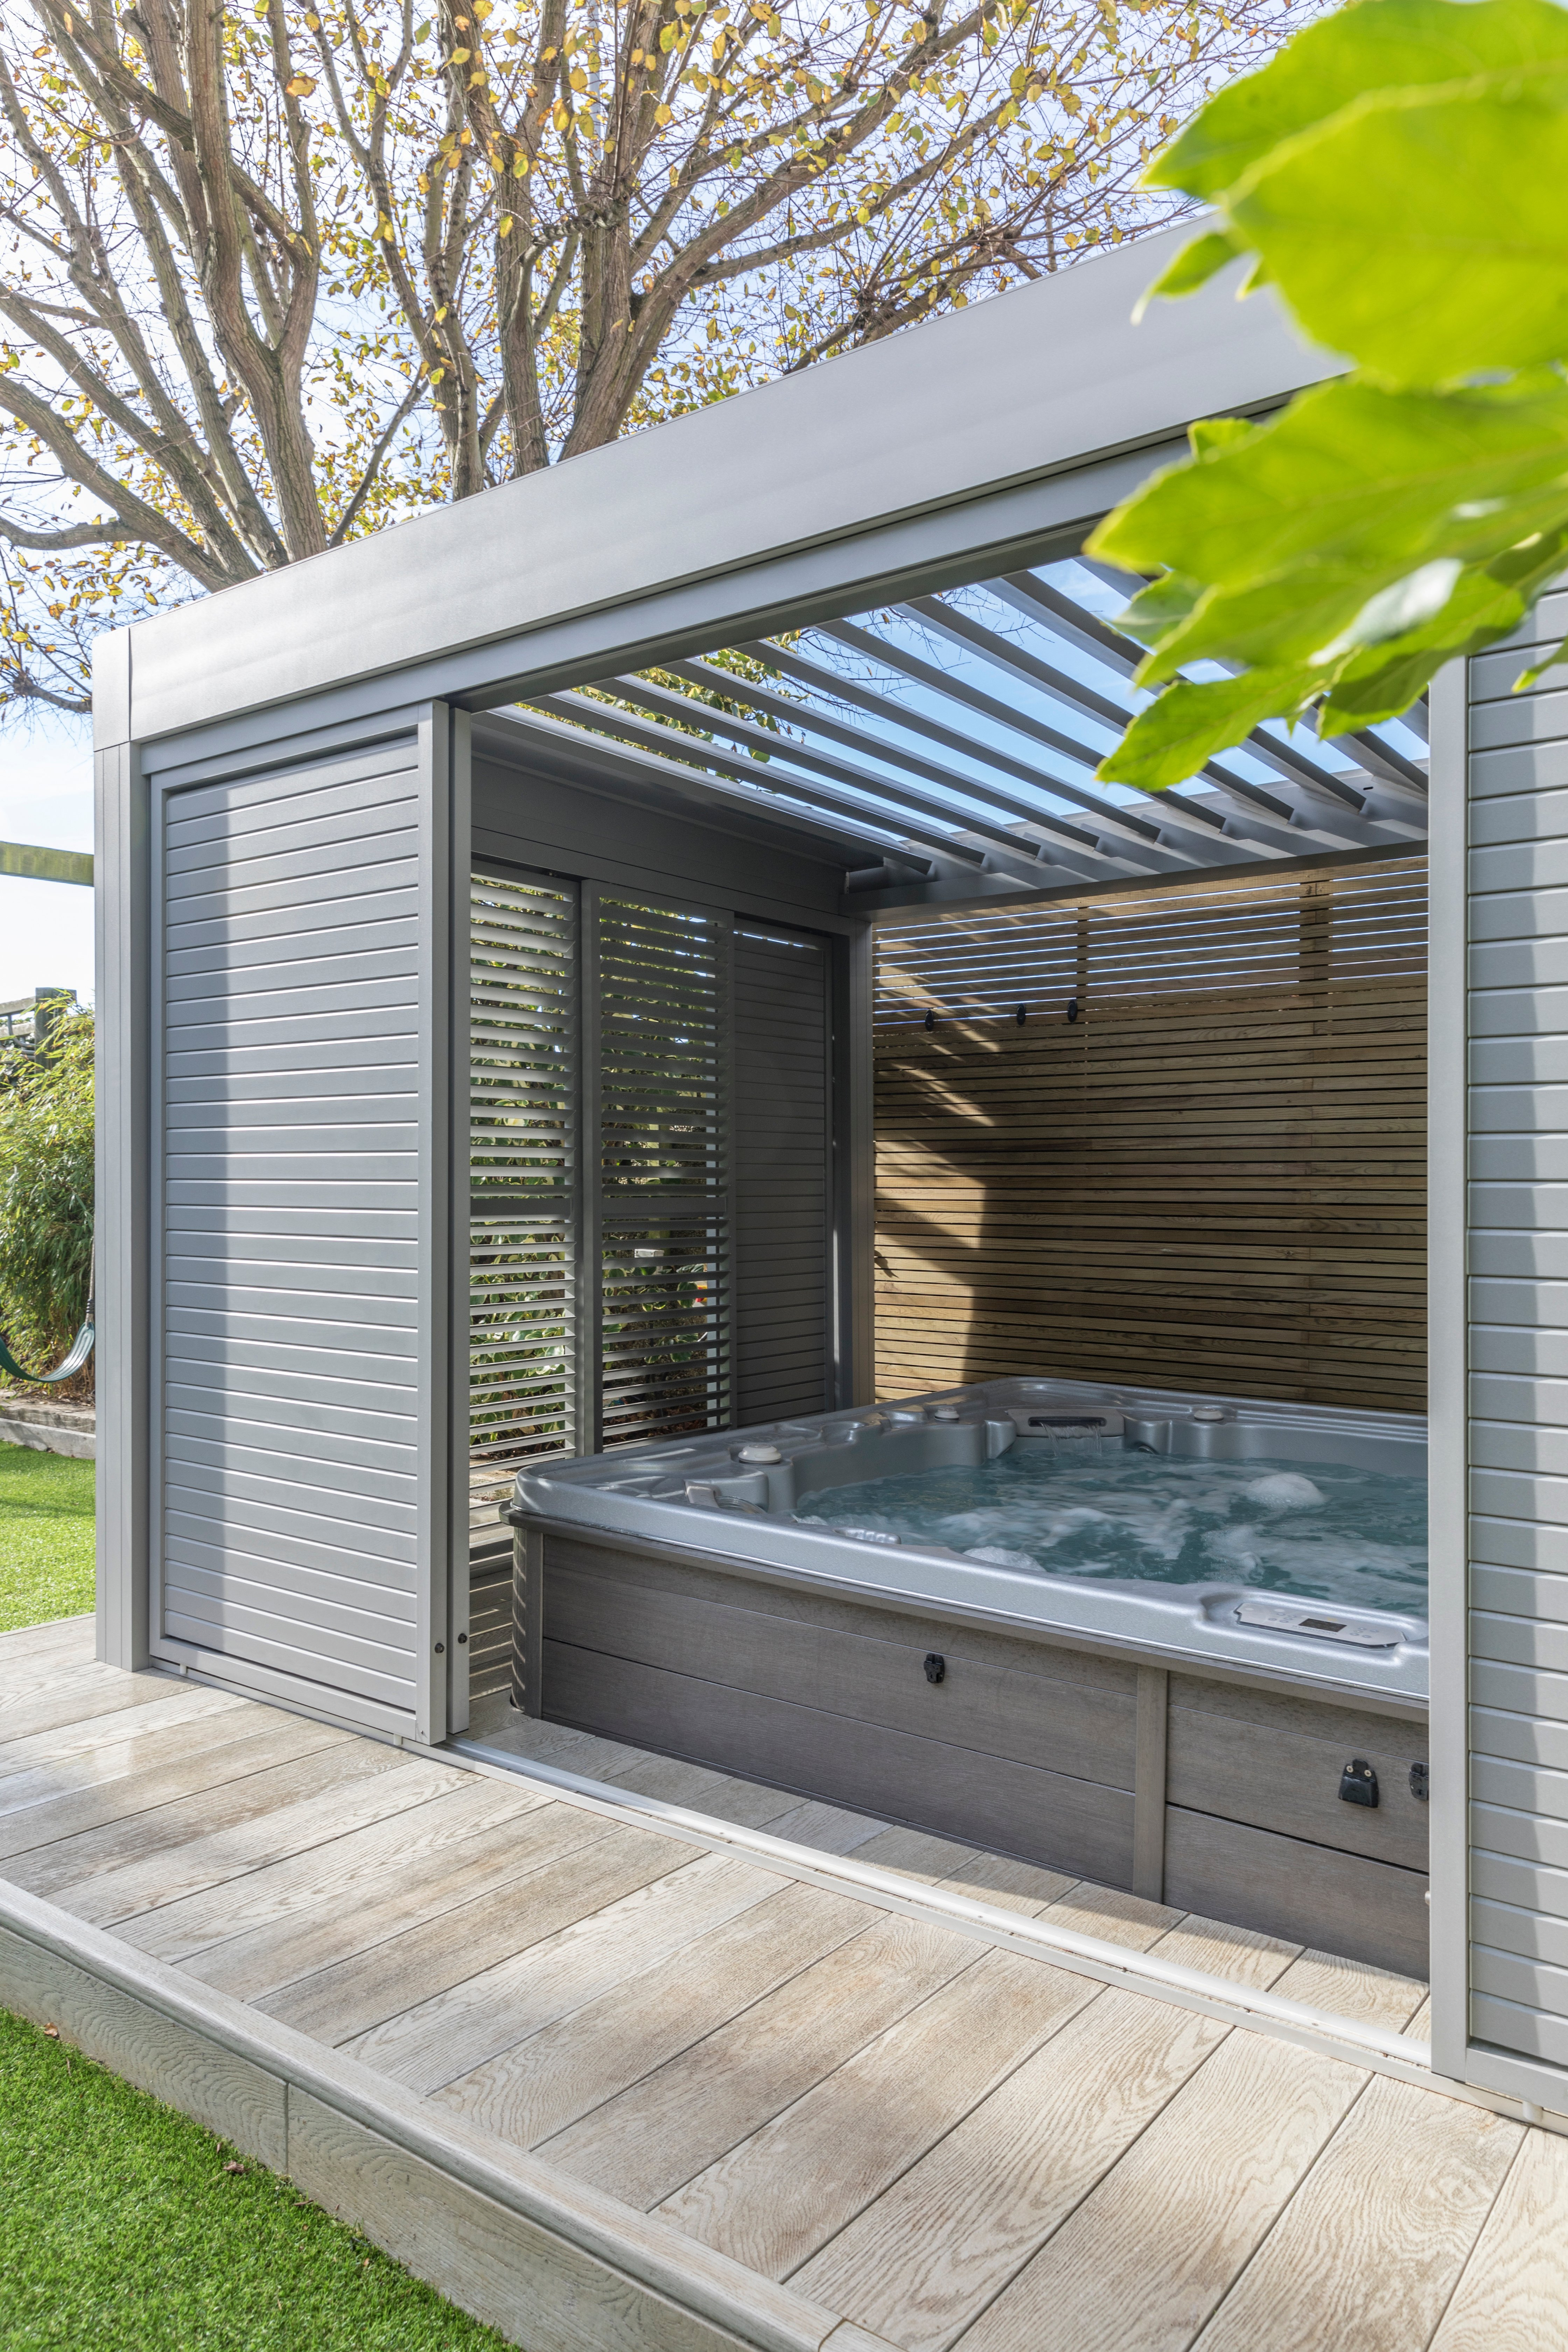 private_residence_brighton_camargue_4330